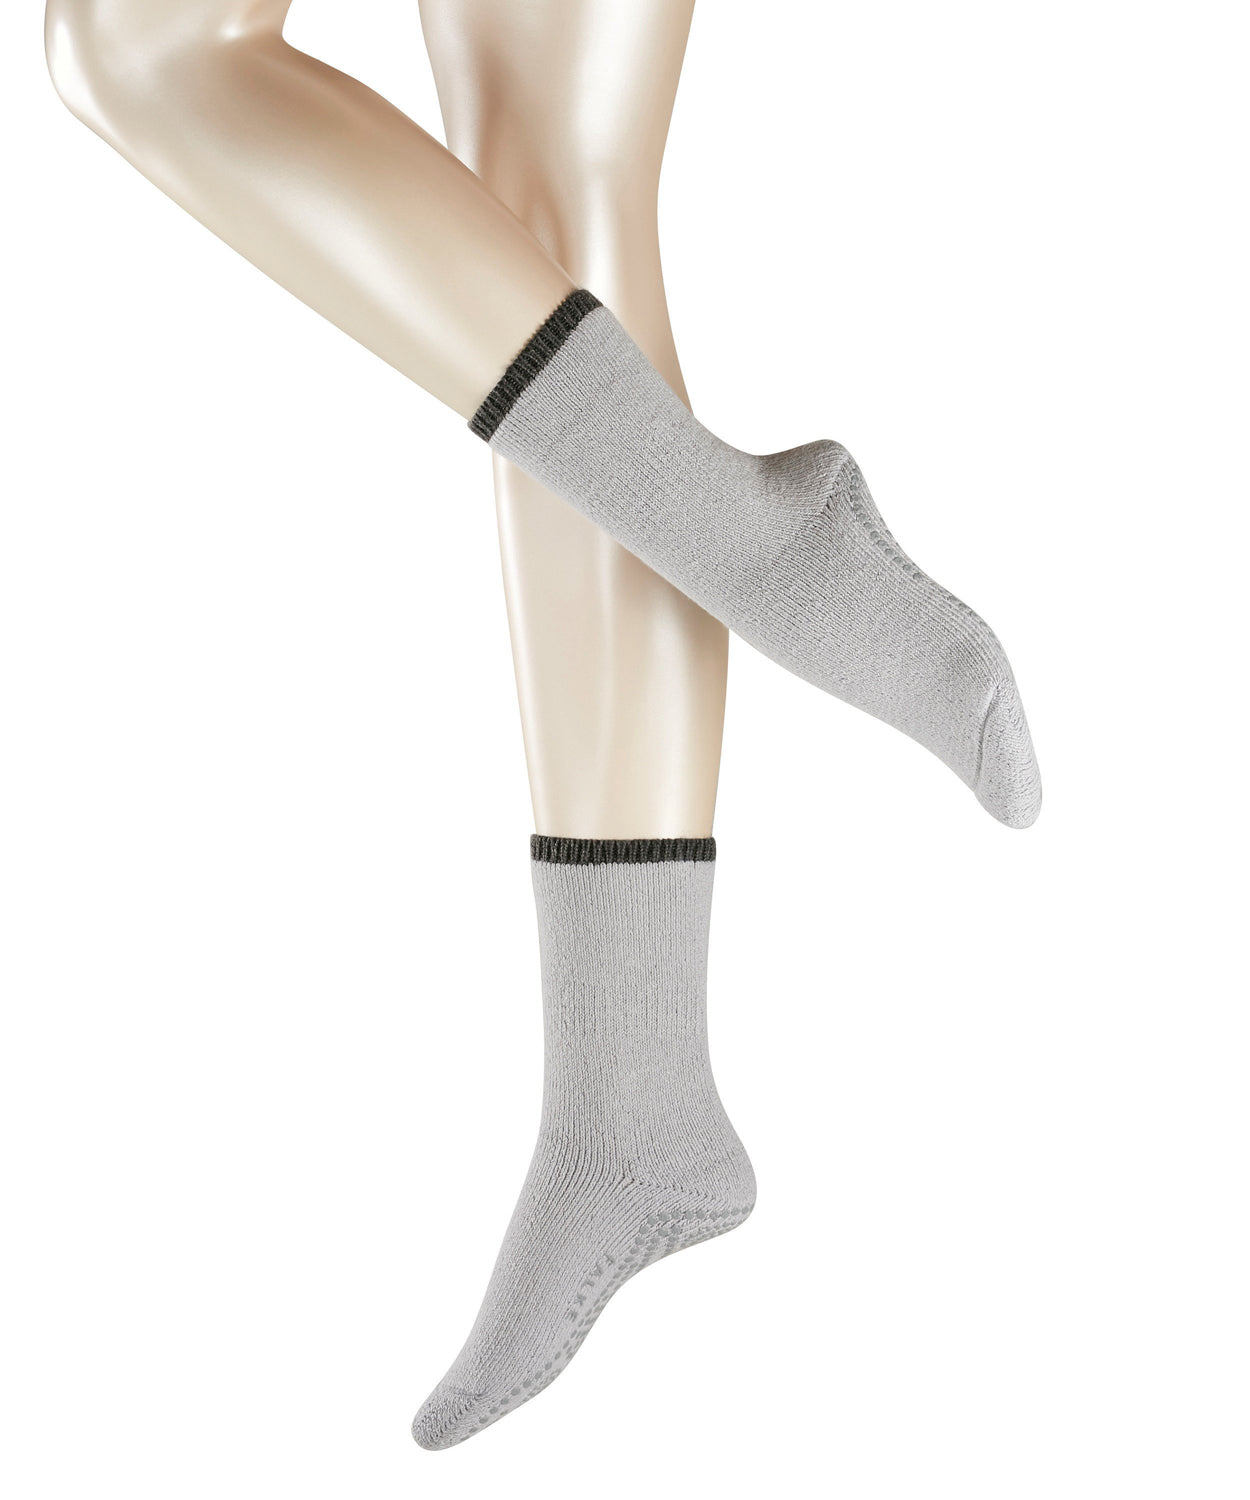 Falke Womens Slipper Socks - Silver